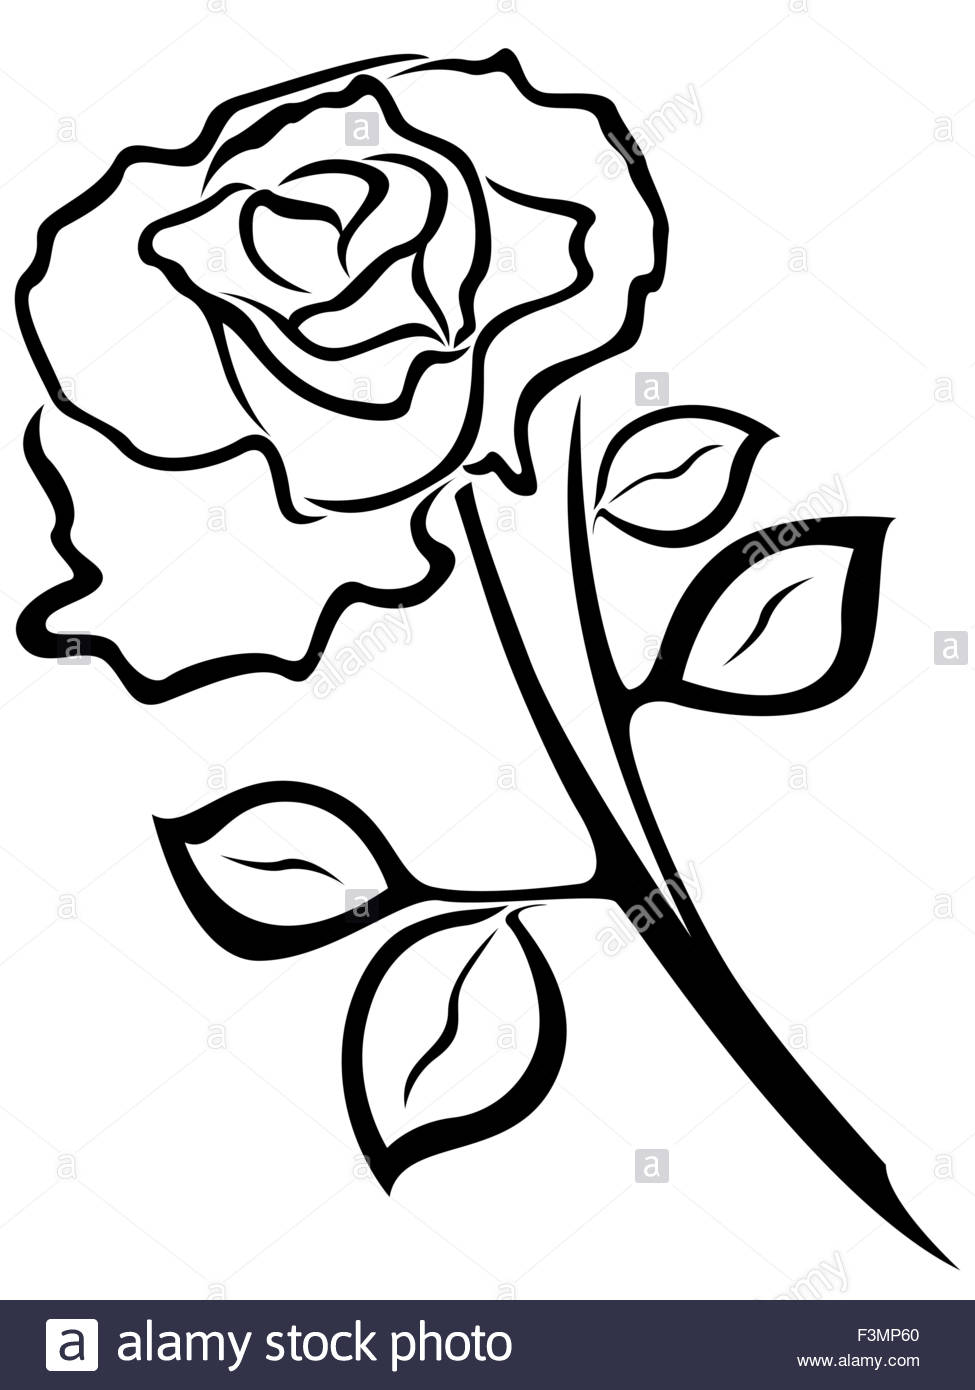 975x1390 Black Vector Outline Of Rose Flower Isolated On A White Background